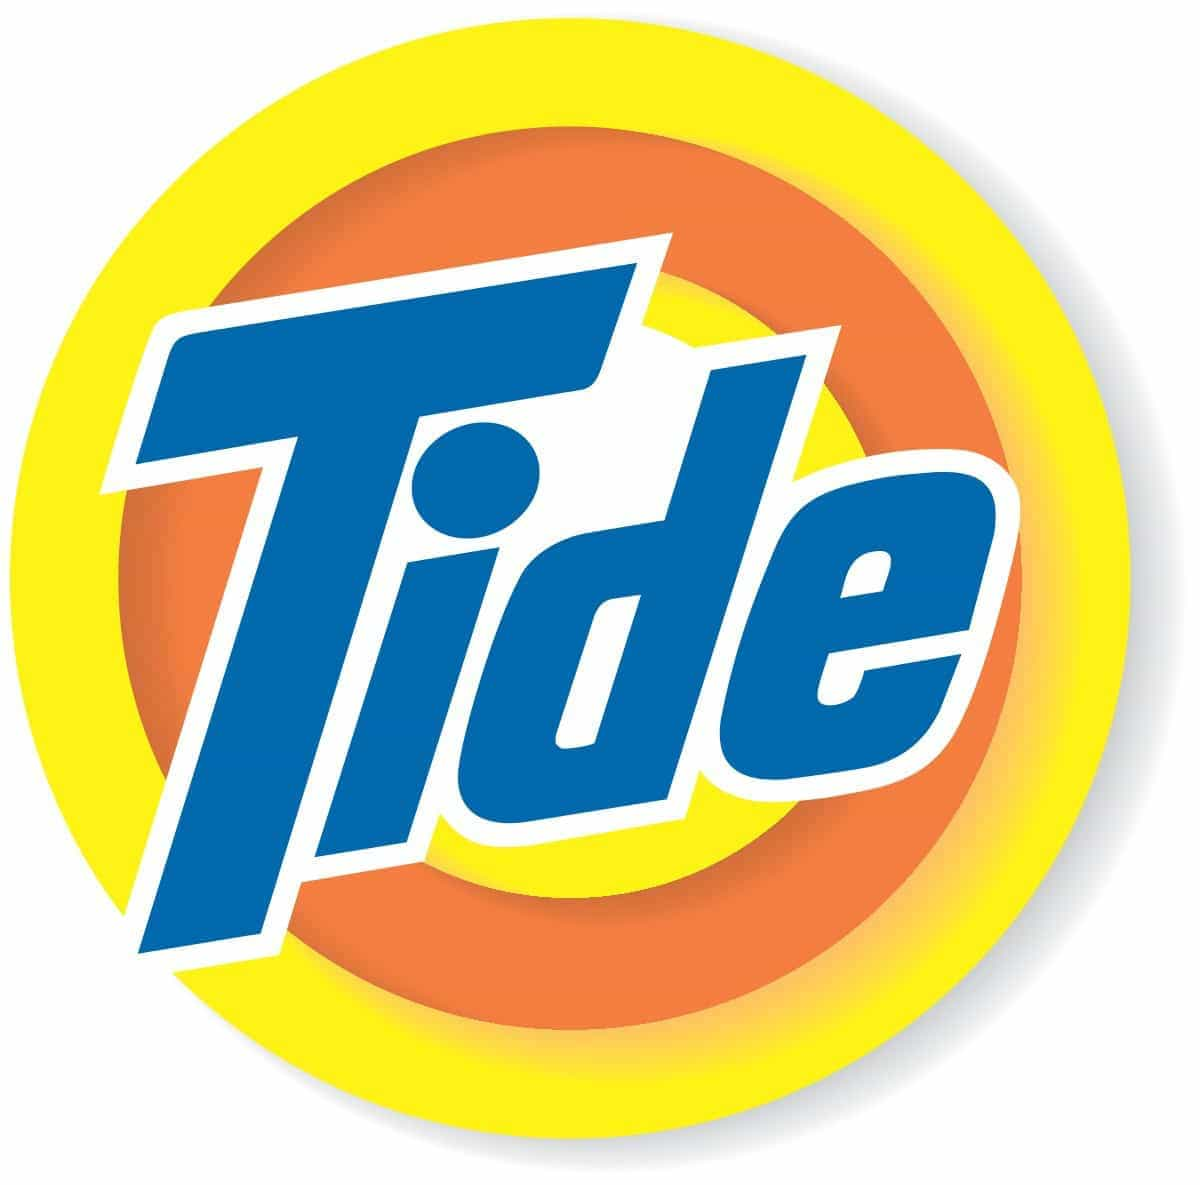 SWOT analysis of Tide